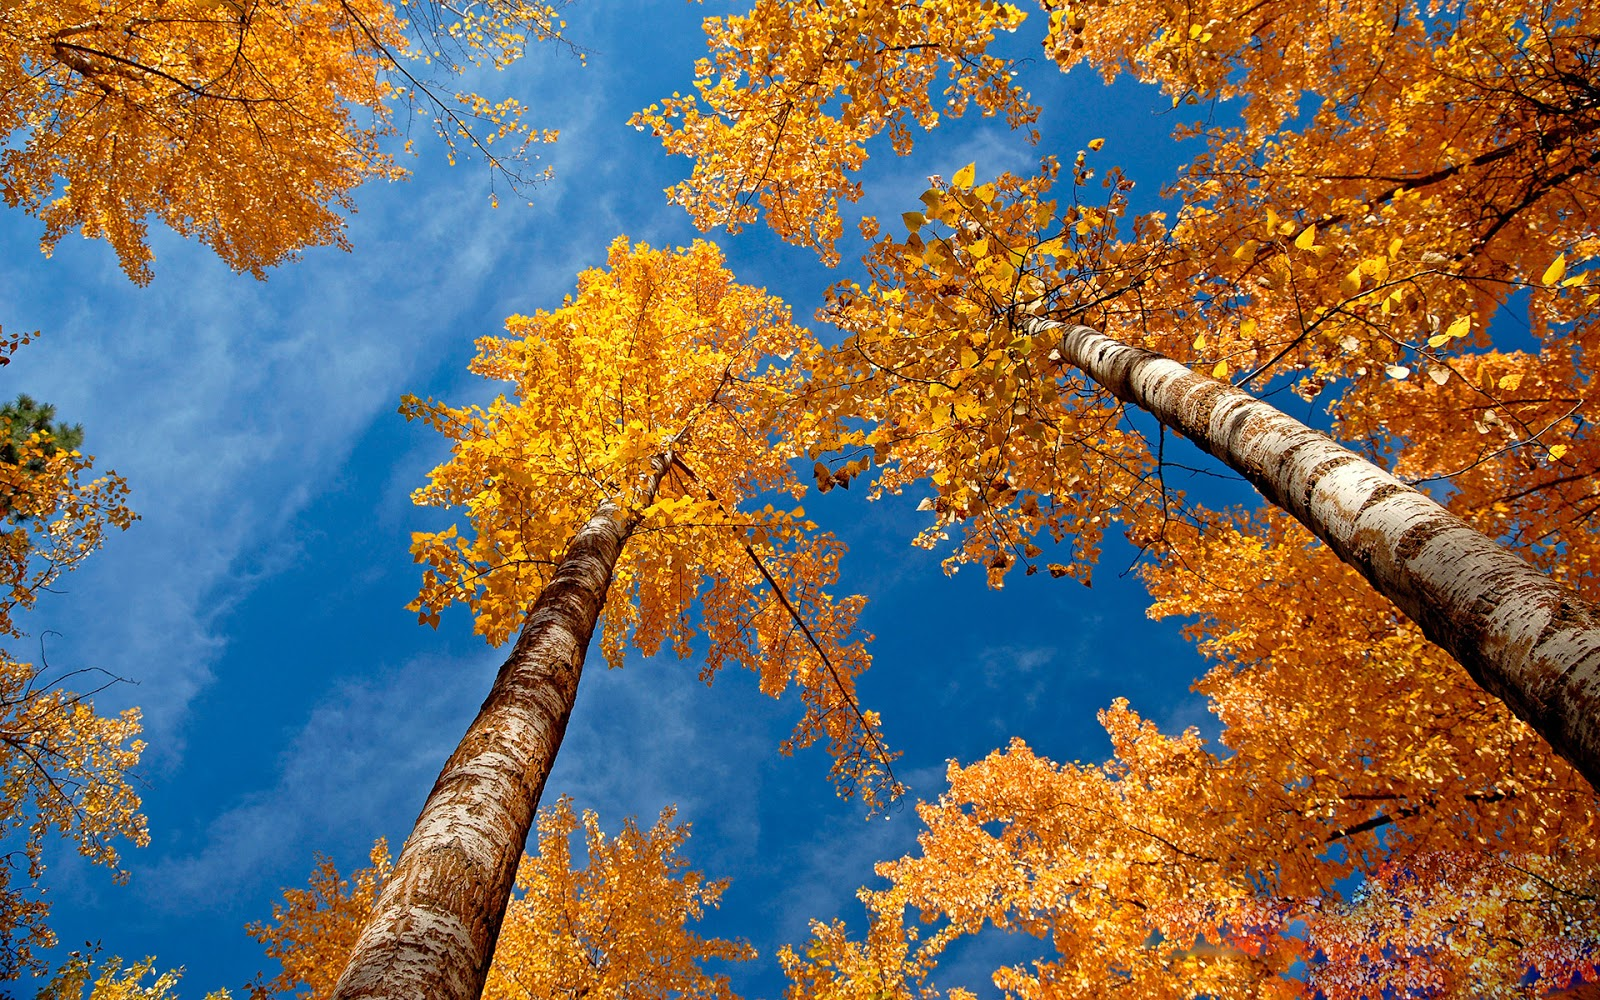 http://3.bp.blogspot.com/-dFBeEP_nERQ/UNryfRc0AhI/AAAAAAAAChA/z-5-H1pE4zg/s1600/Birch-wallpaper-autumn-sky-on-your-desktop.jpg